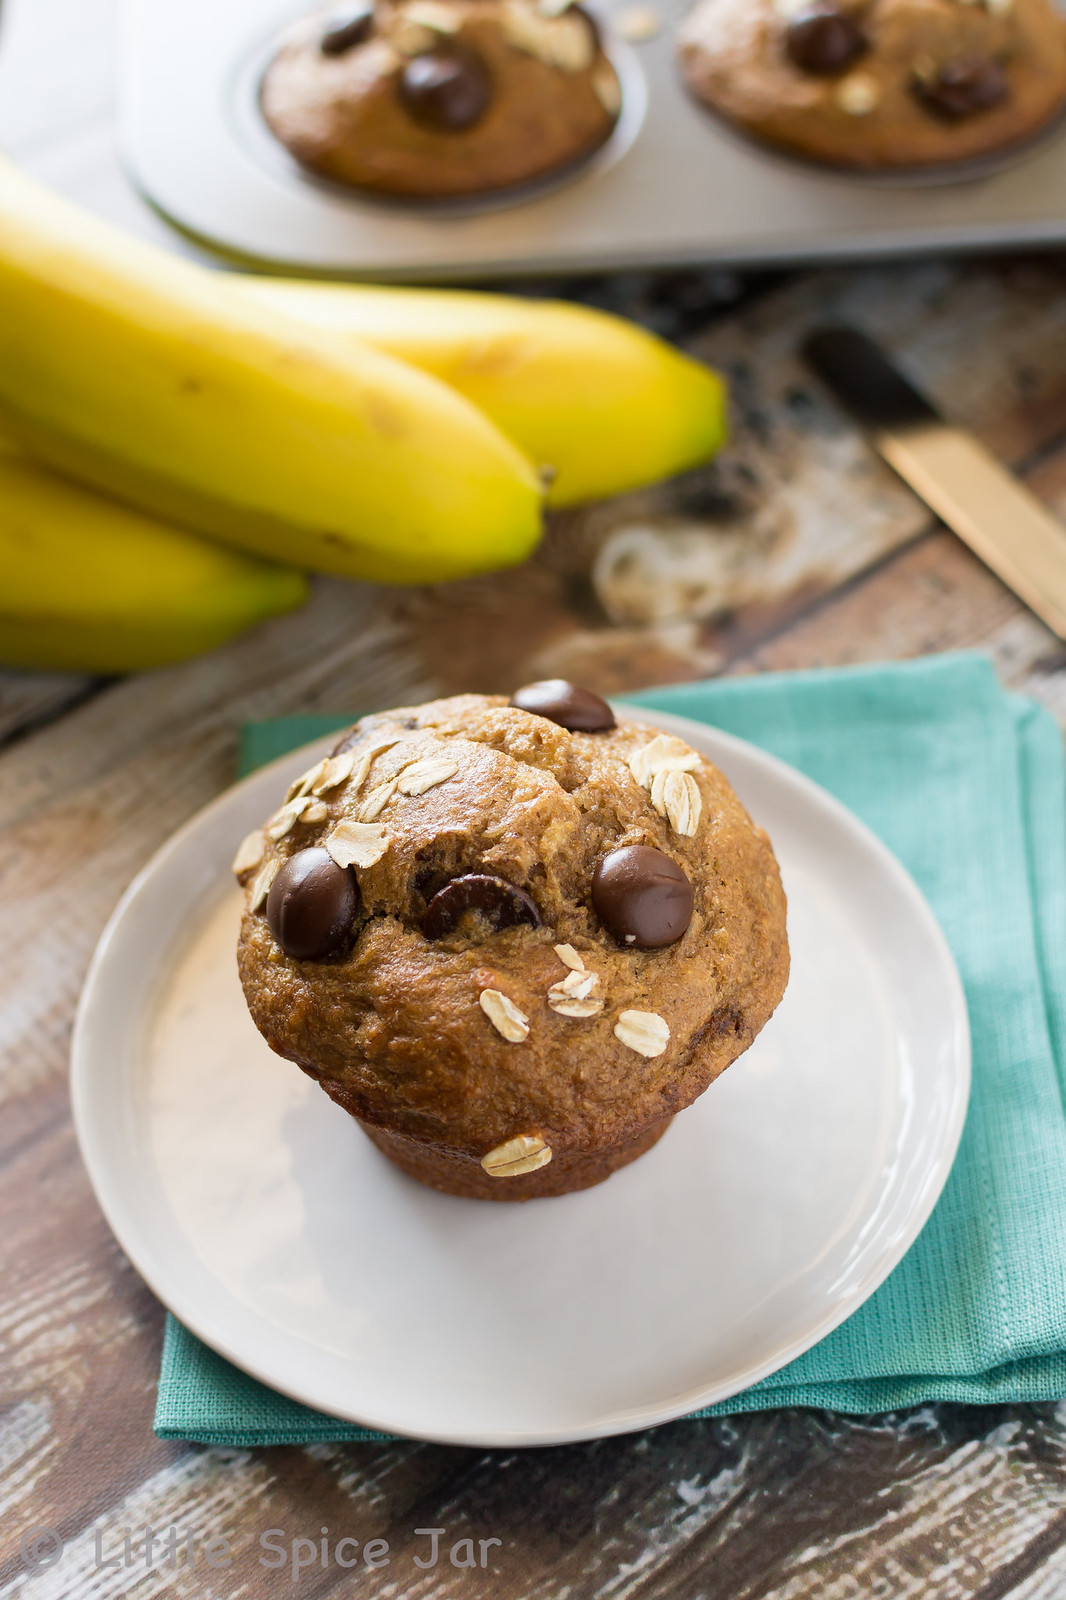 prepared muffin on white plate with bananas and more muffins in background